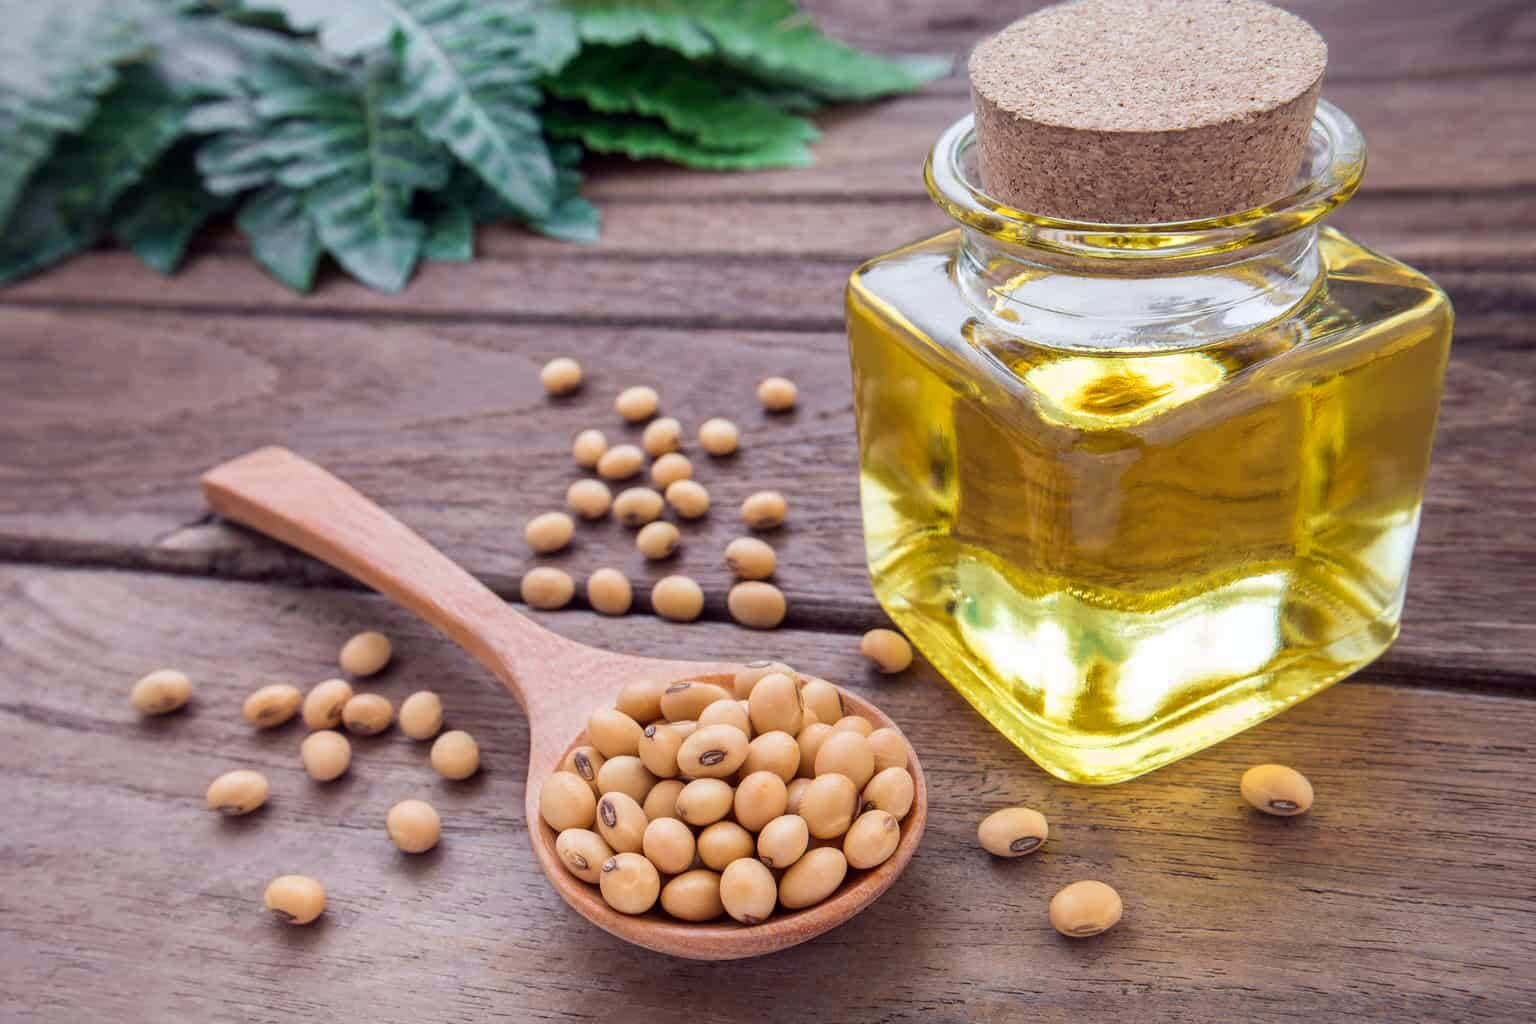 soya beans and soybean oil on a table